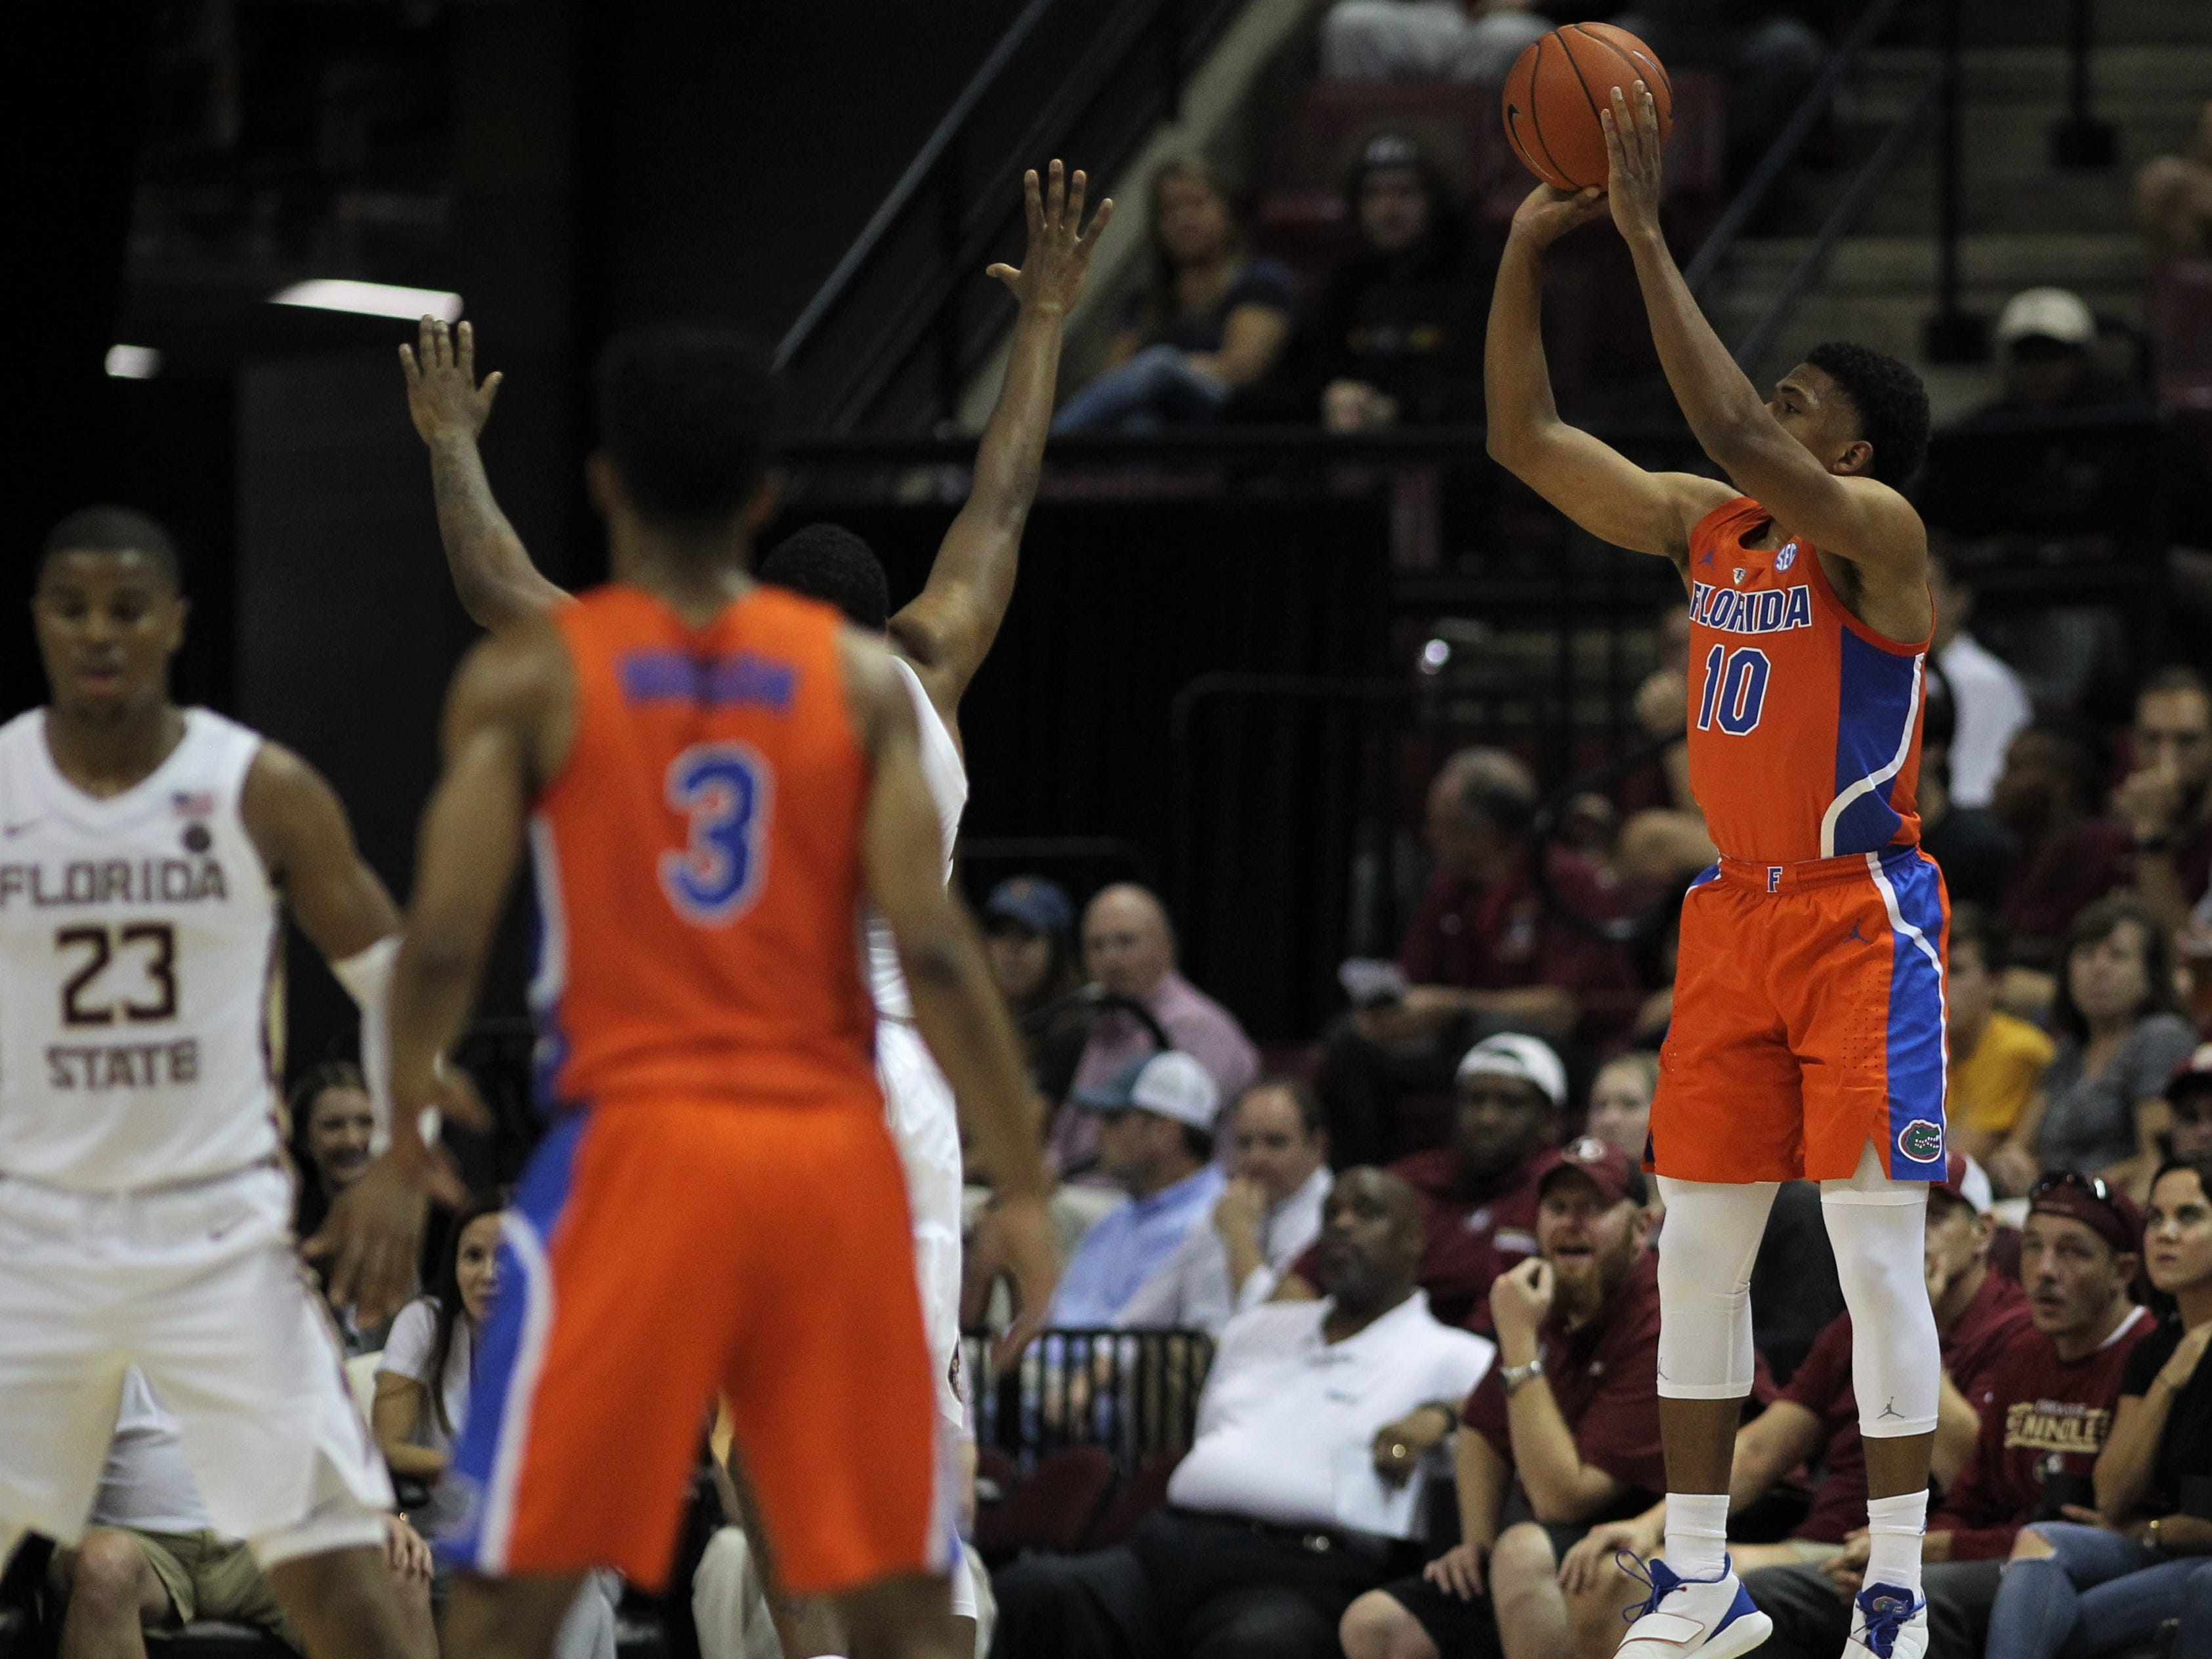 Florida's Noah Locke shoots a 3-pointer against FSU during the Sunshine Showdown game Tuesday at the Tucker Civic Center.